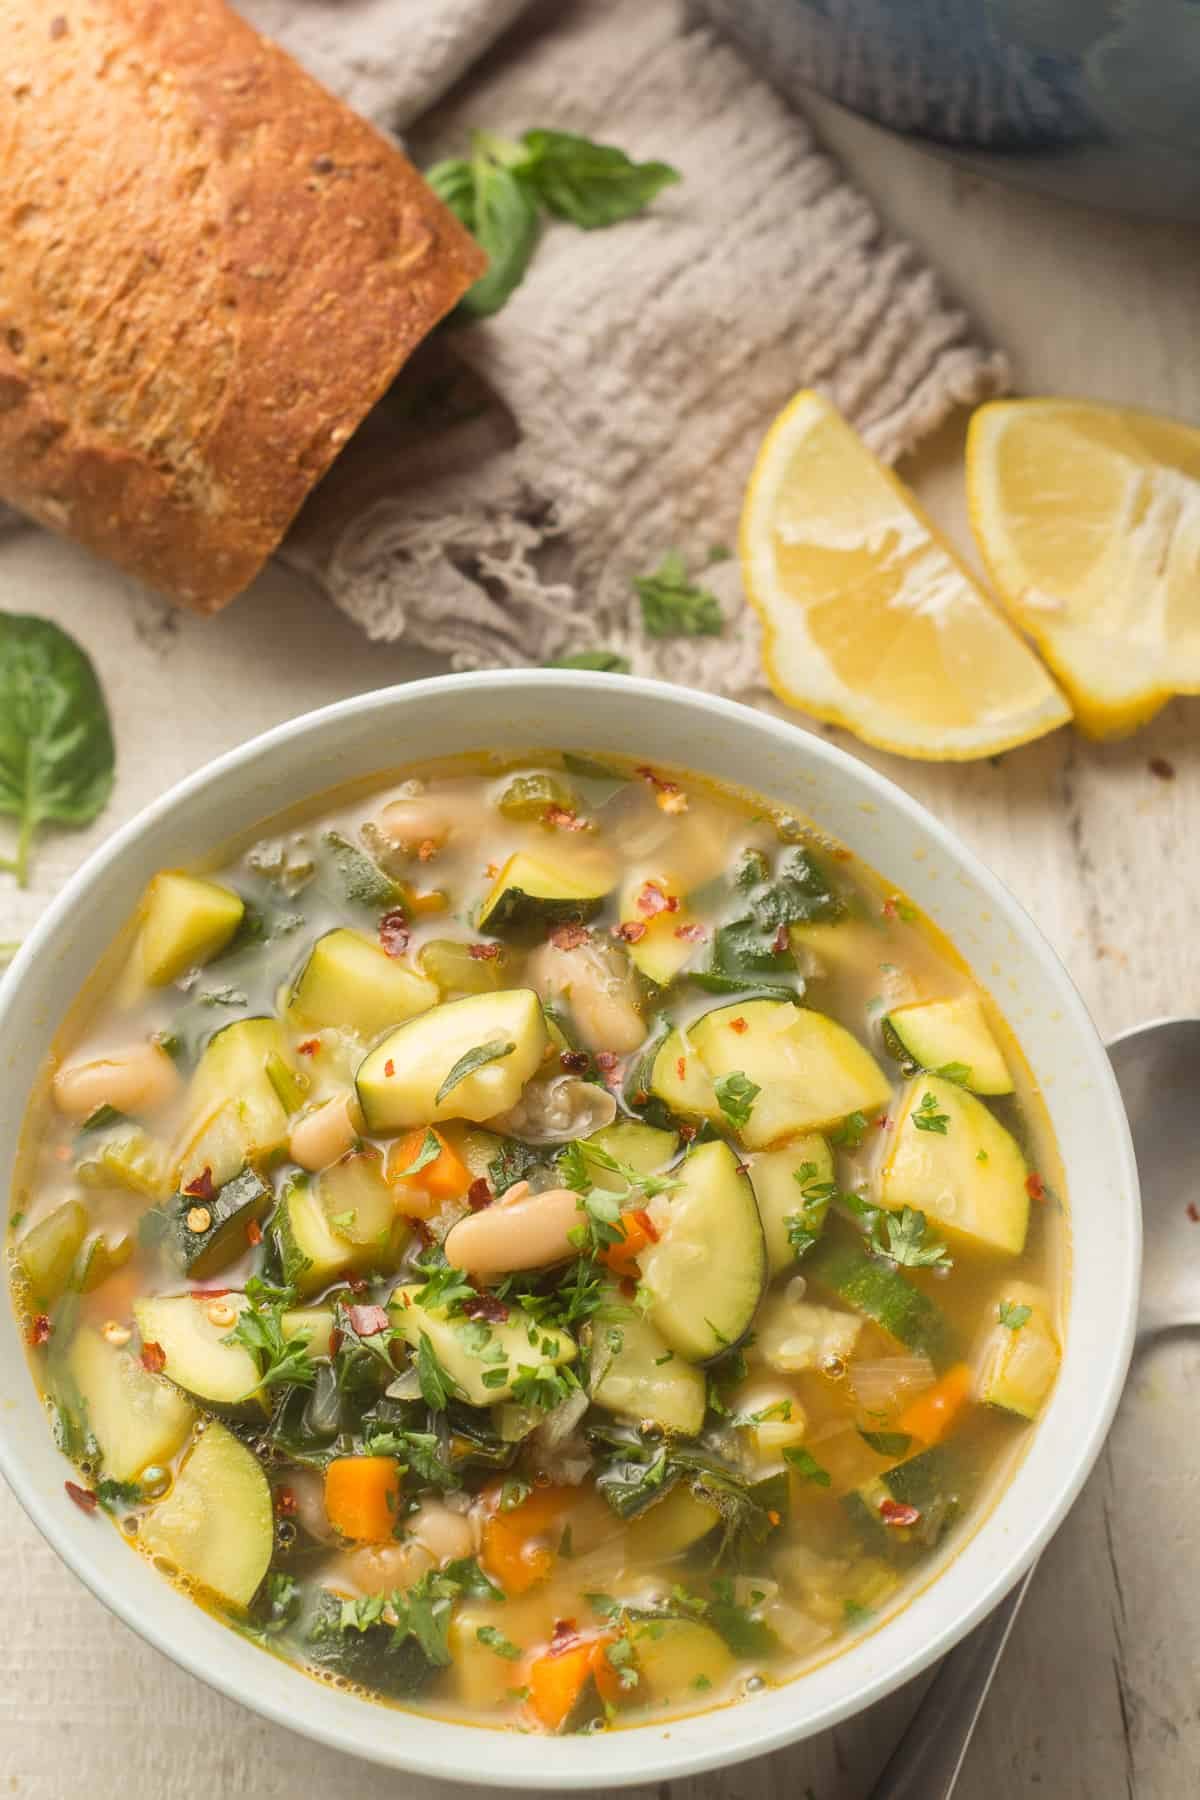 Bowl of Zucchini Soup with Baguette and Lemon Wedges in the Background